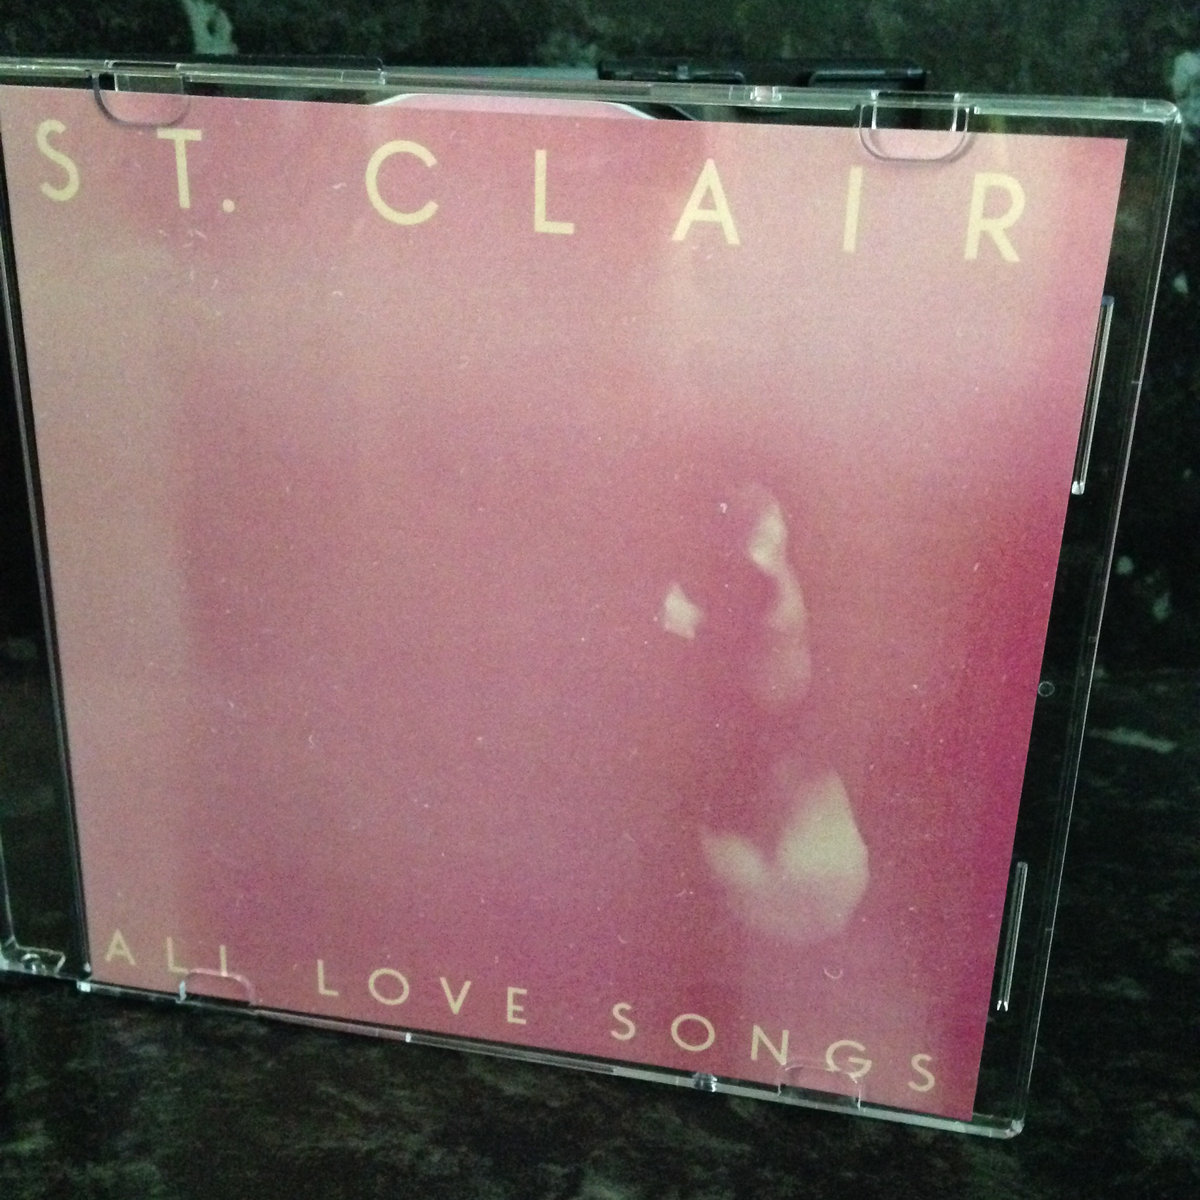 fbfc42389929a Physical copy of St.Clair s debut EP